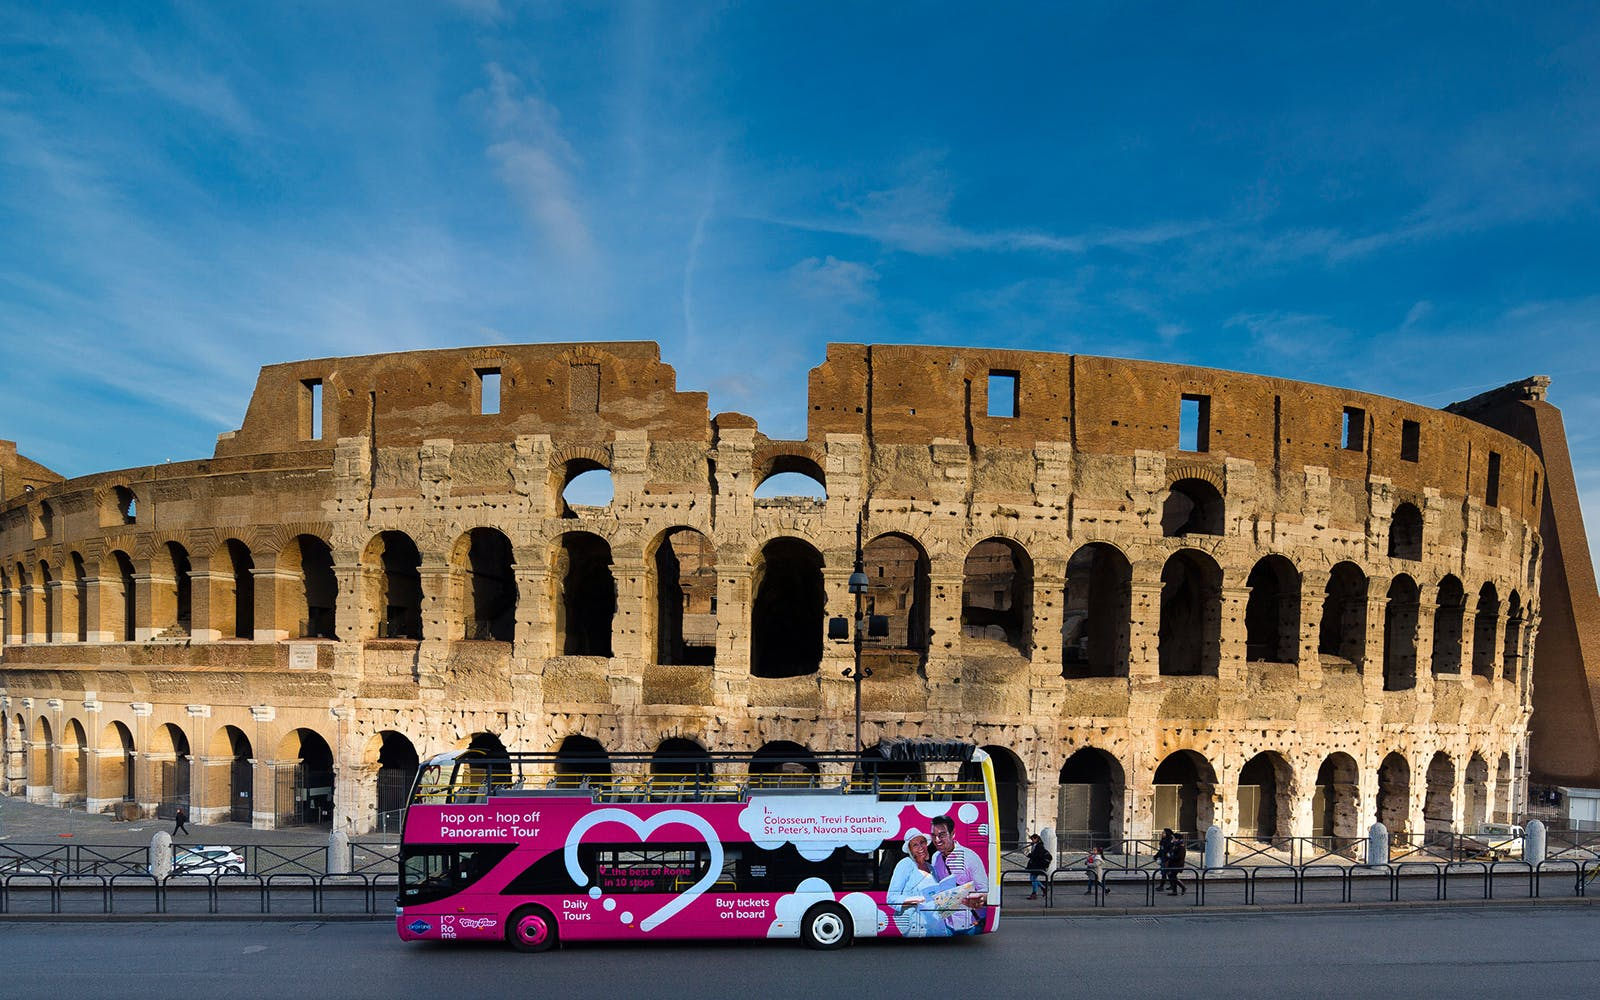 Hop-On Hop-Off Bus + Skip-the-Line Colosseum Tickets